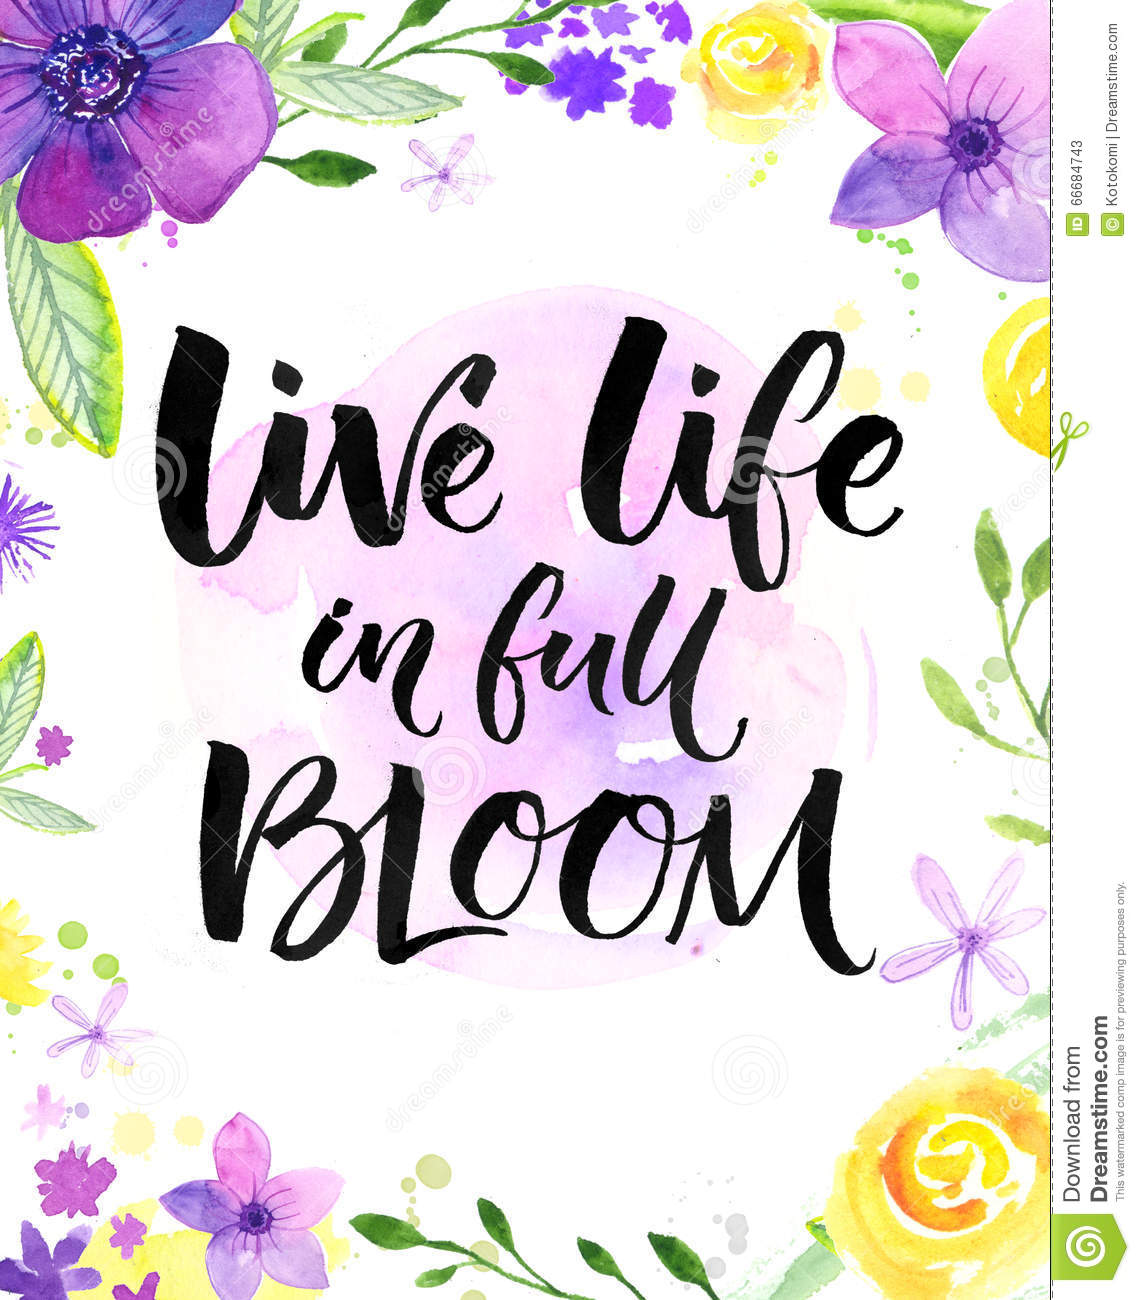 Live life in full of bloom inspirational saying hand